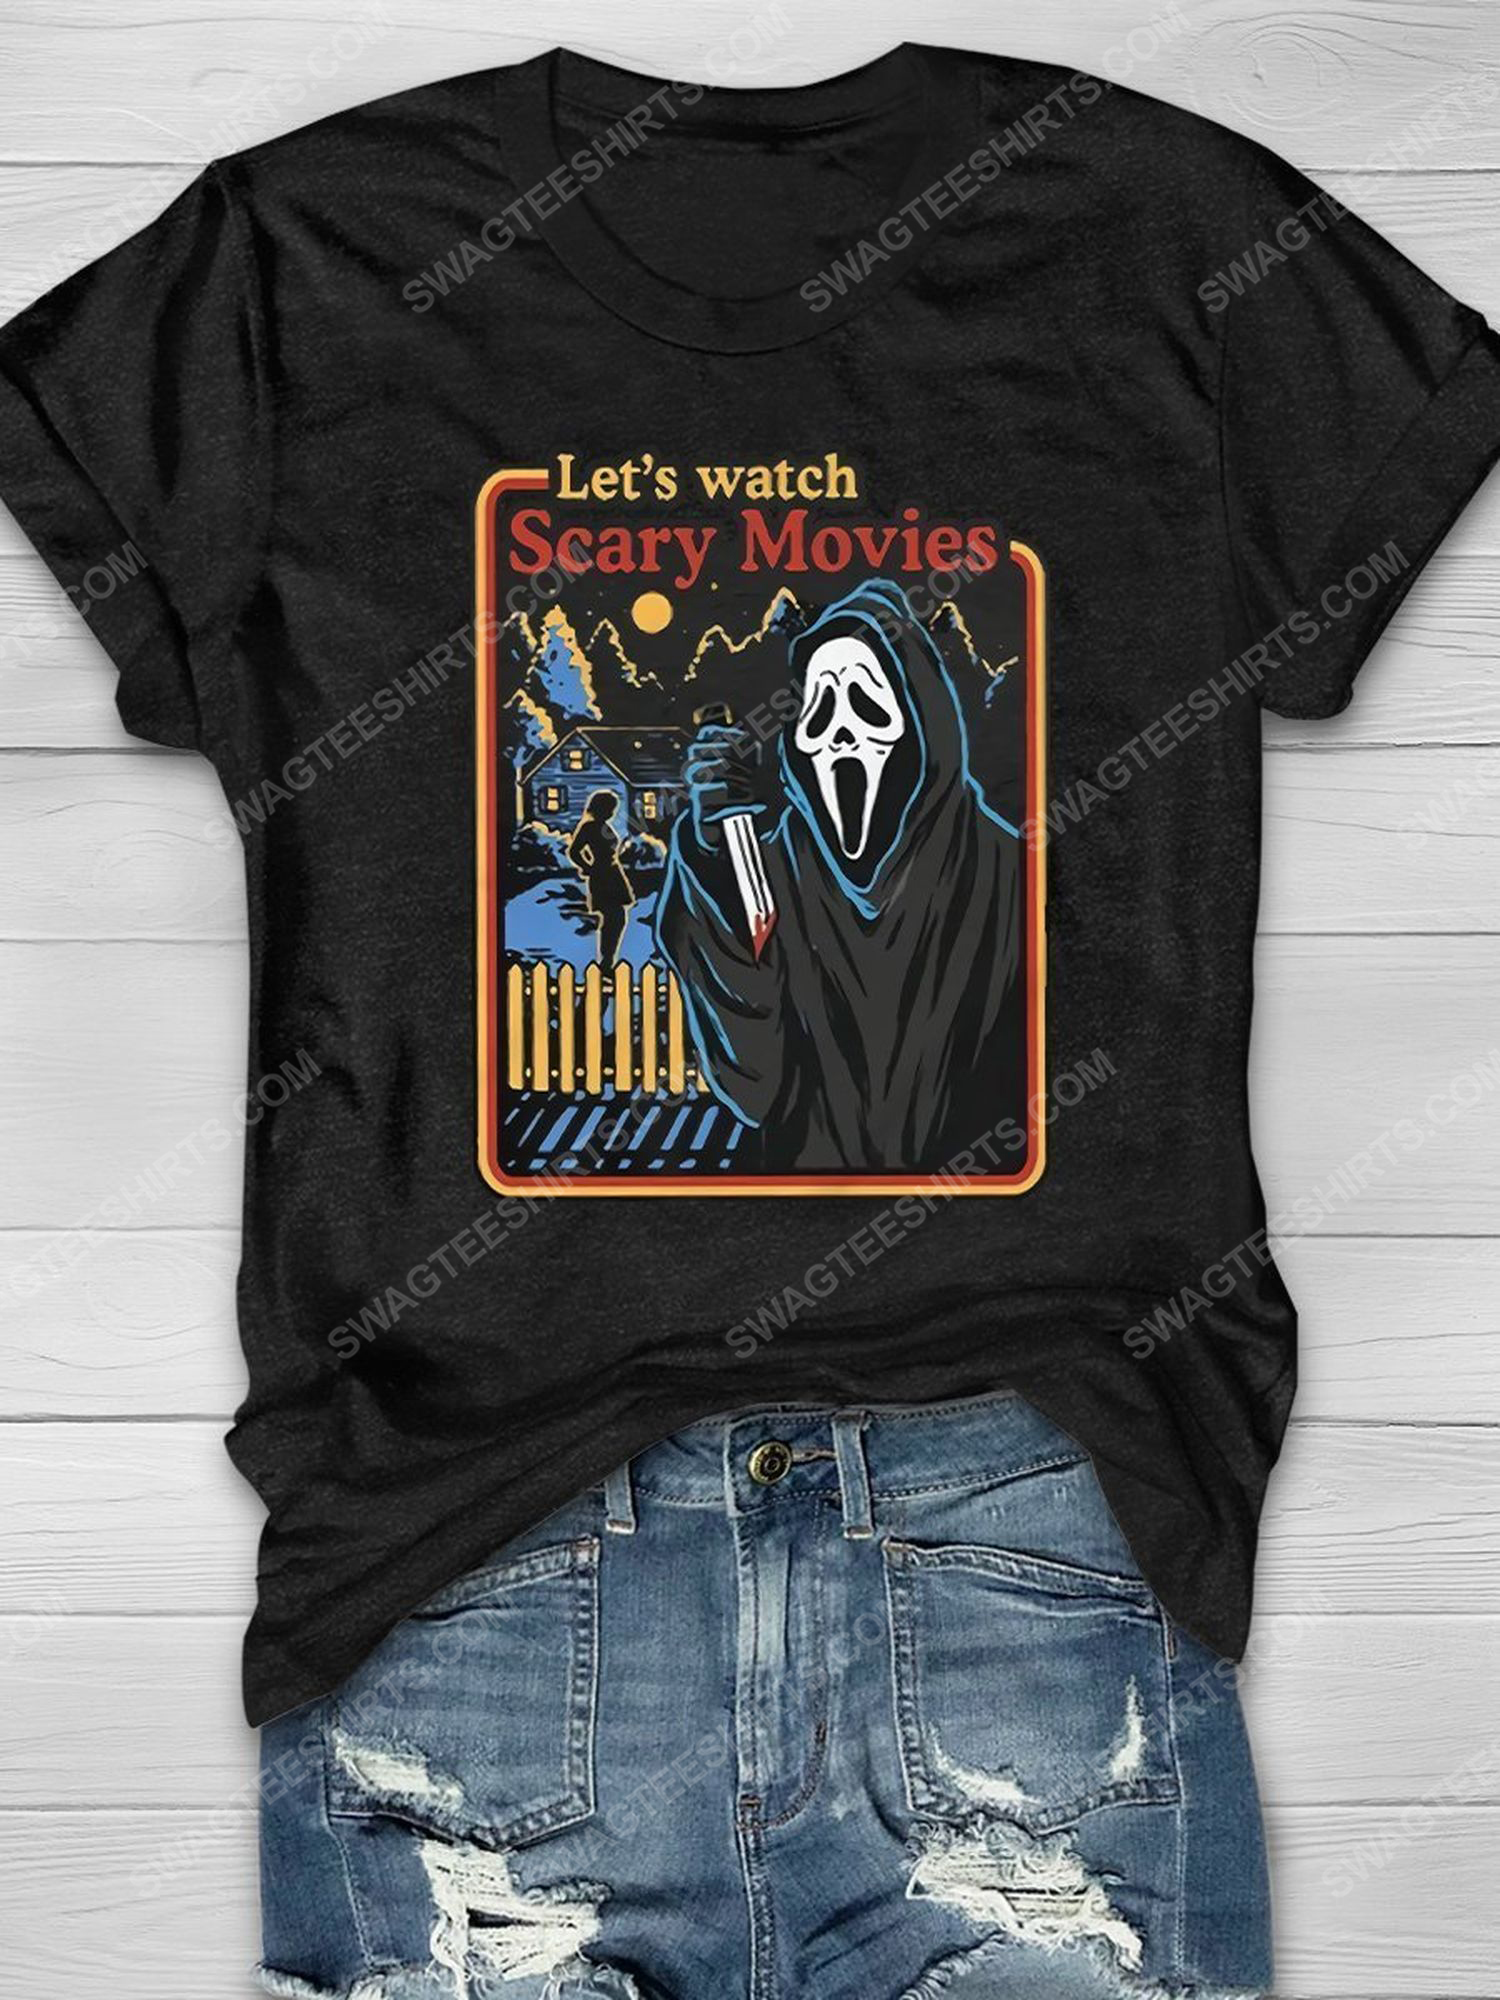 Halloween screaming movie let's watch scary movies shirt 1 - Copy (2)